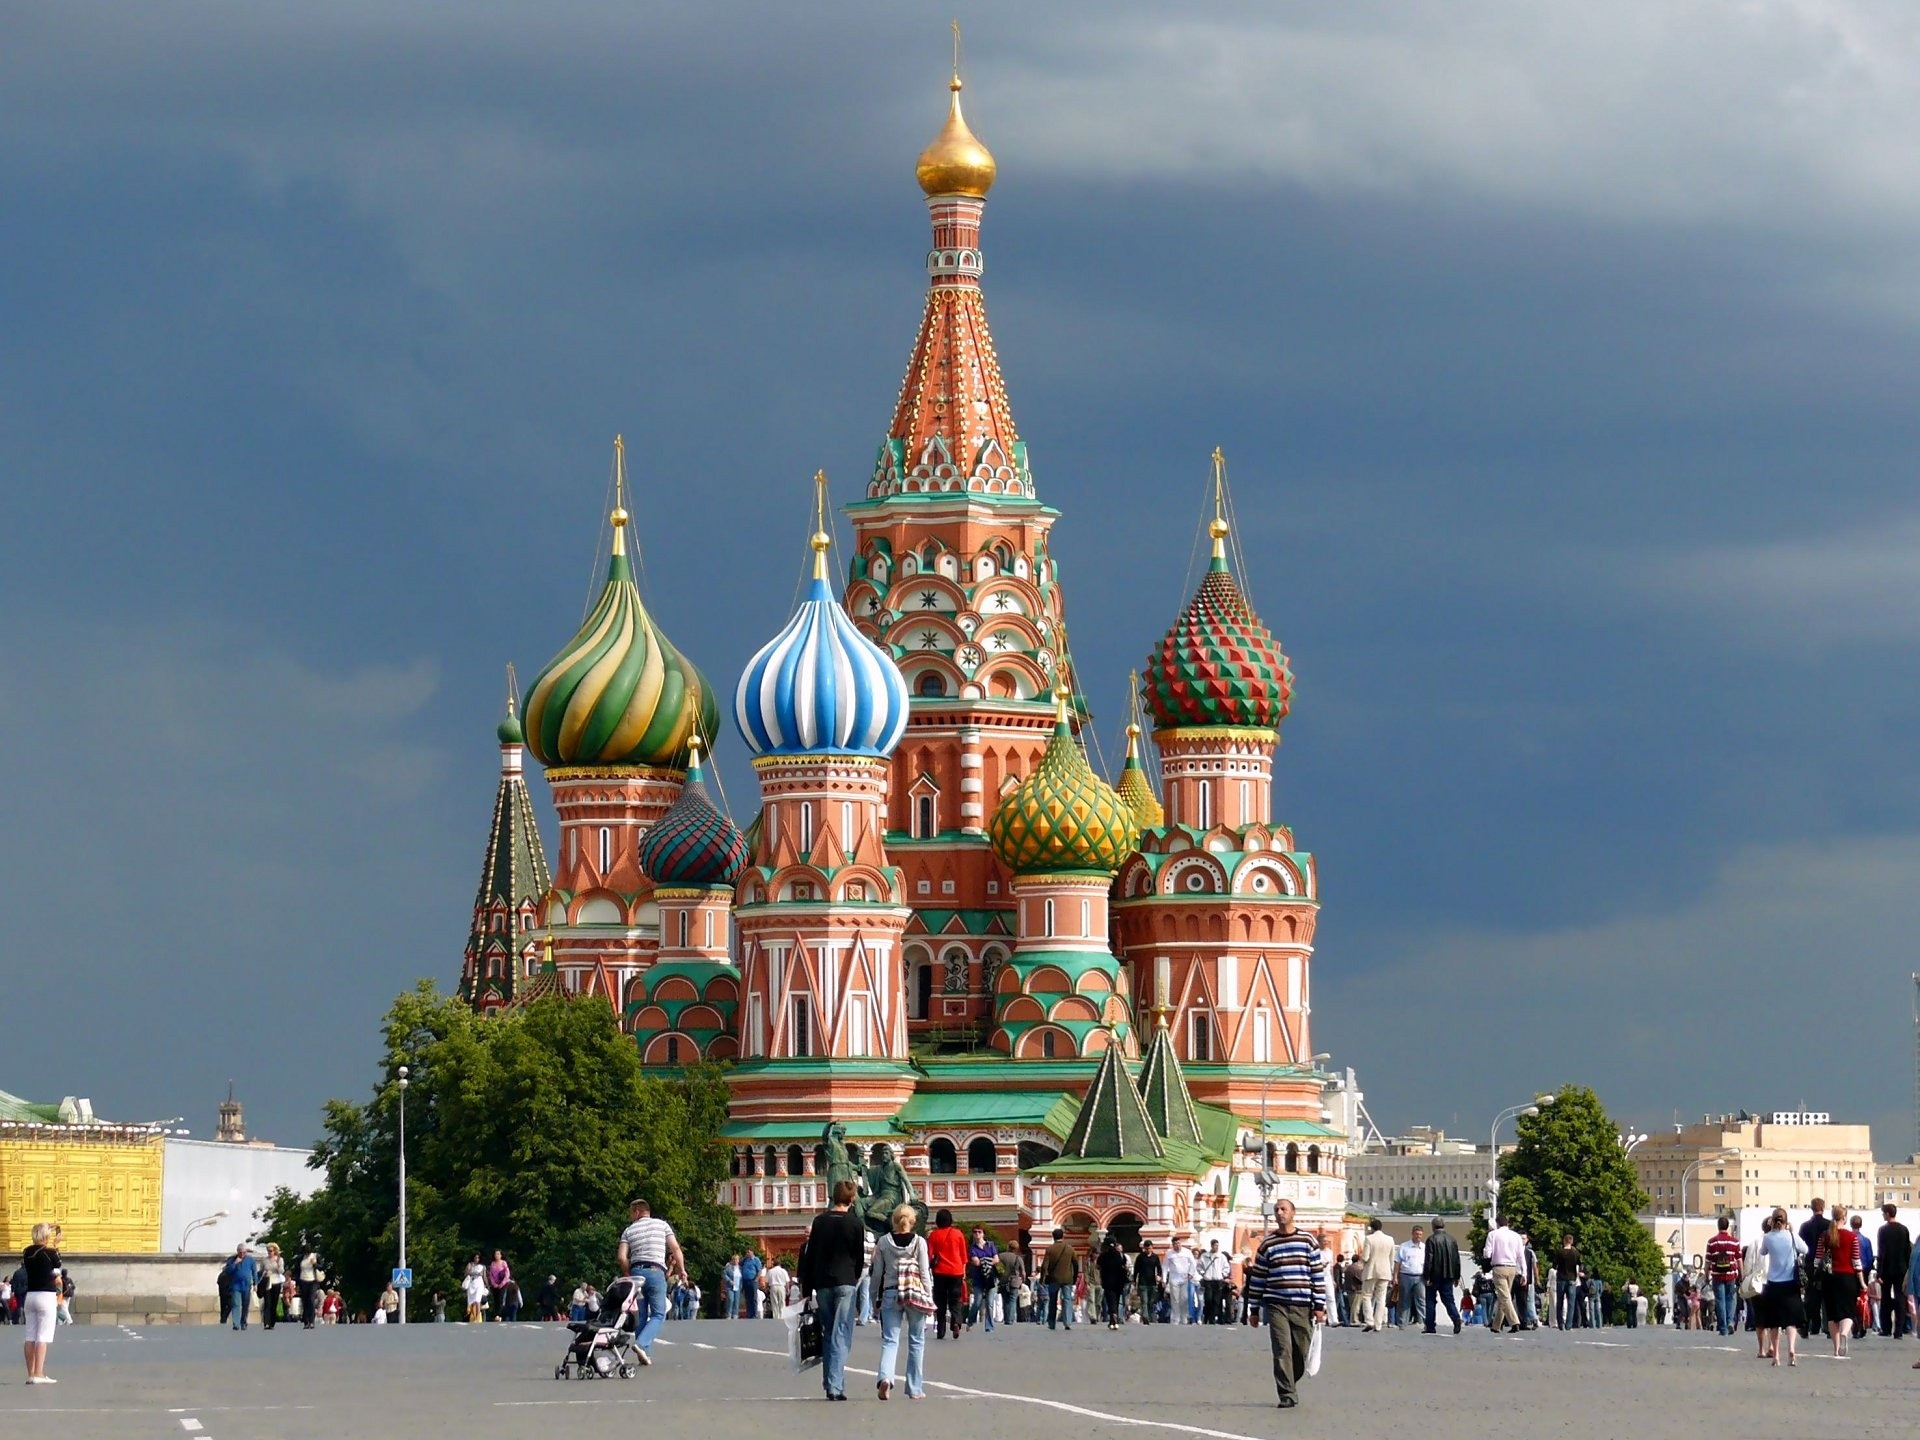 st-basil-s-cathedral-in-moscow-russia